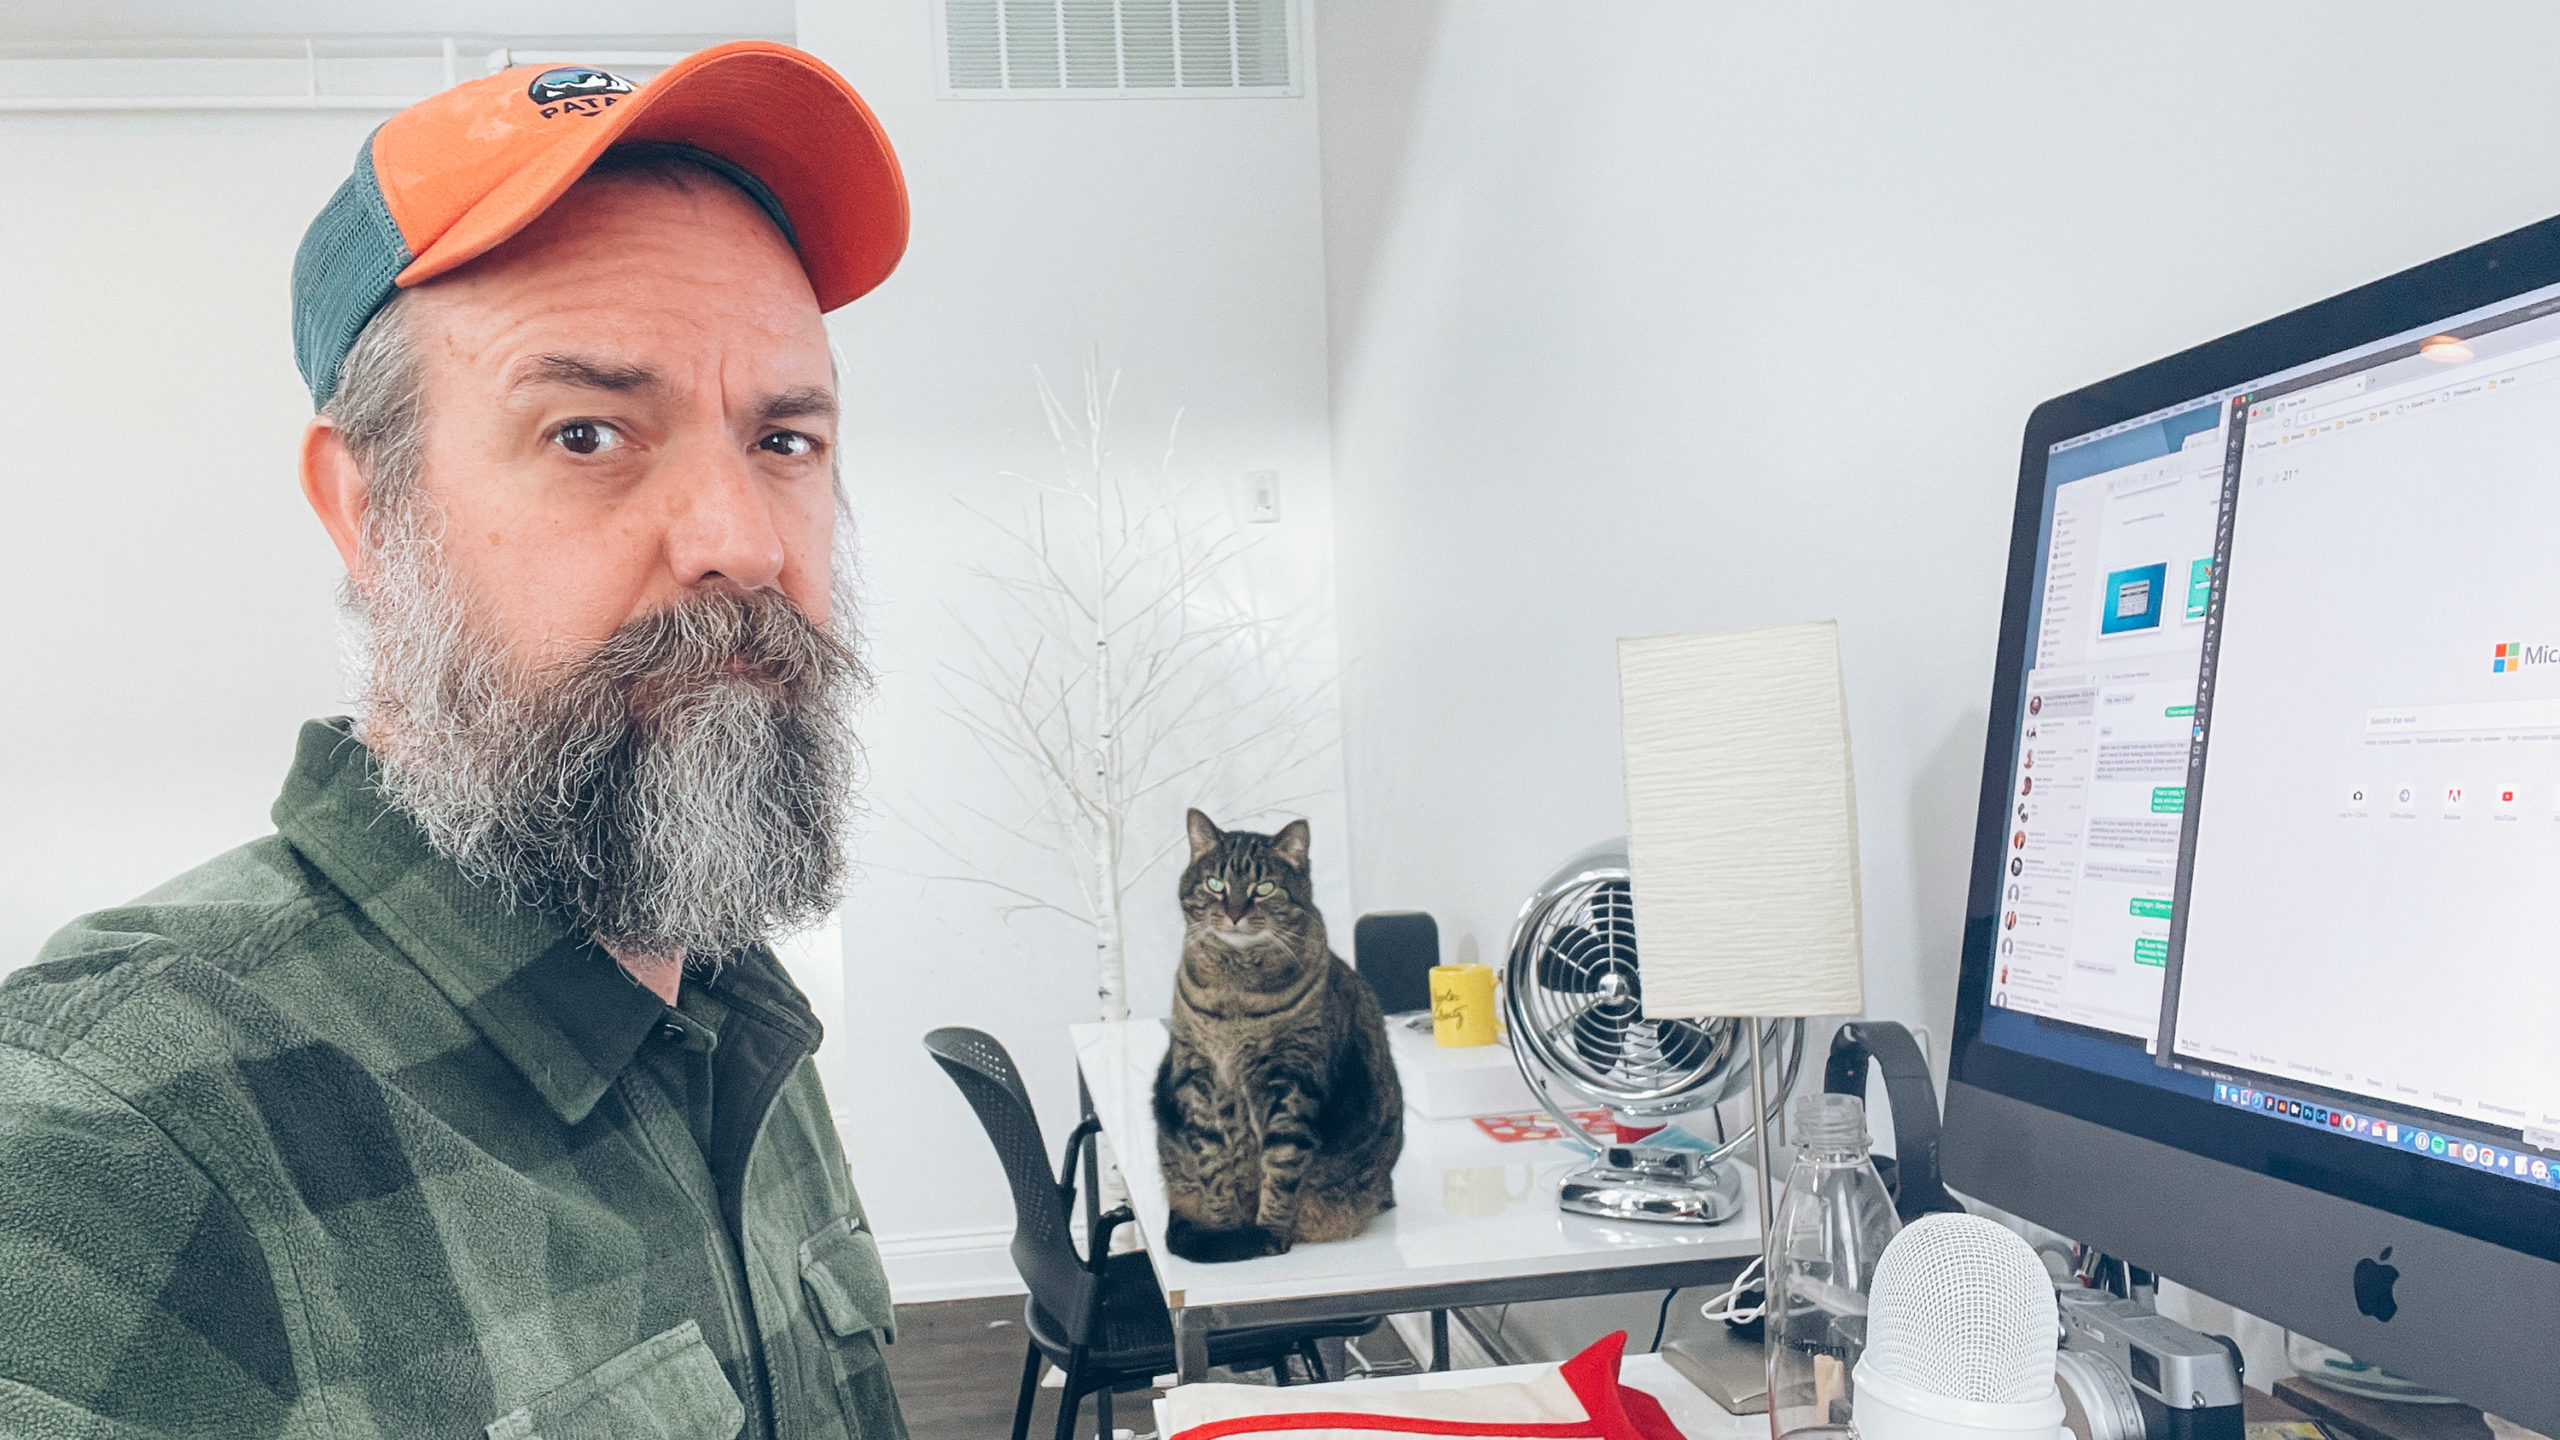 Cat on desk annoyed by aging man with silvering beard